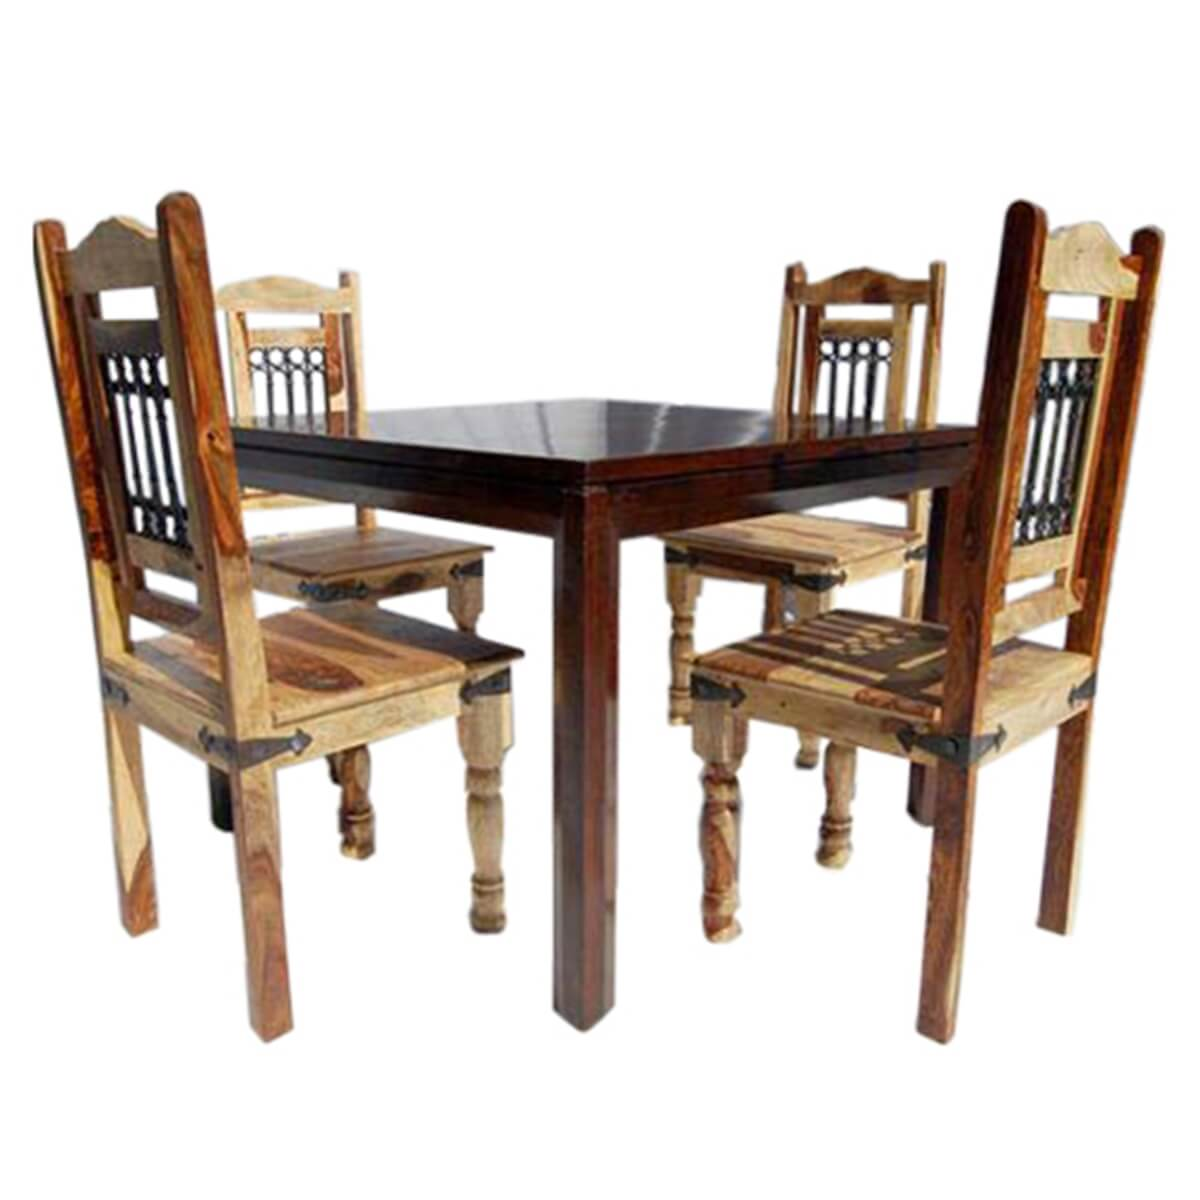 Dining Room Table With Chairs Square Dining Room Table And Chairs Set